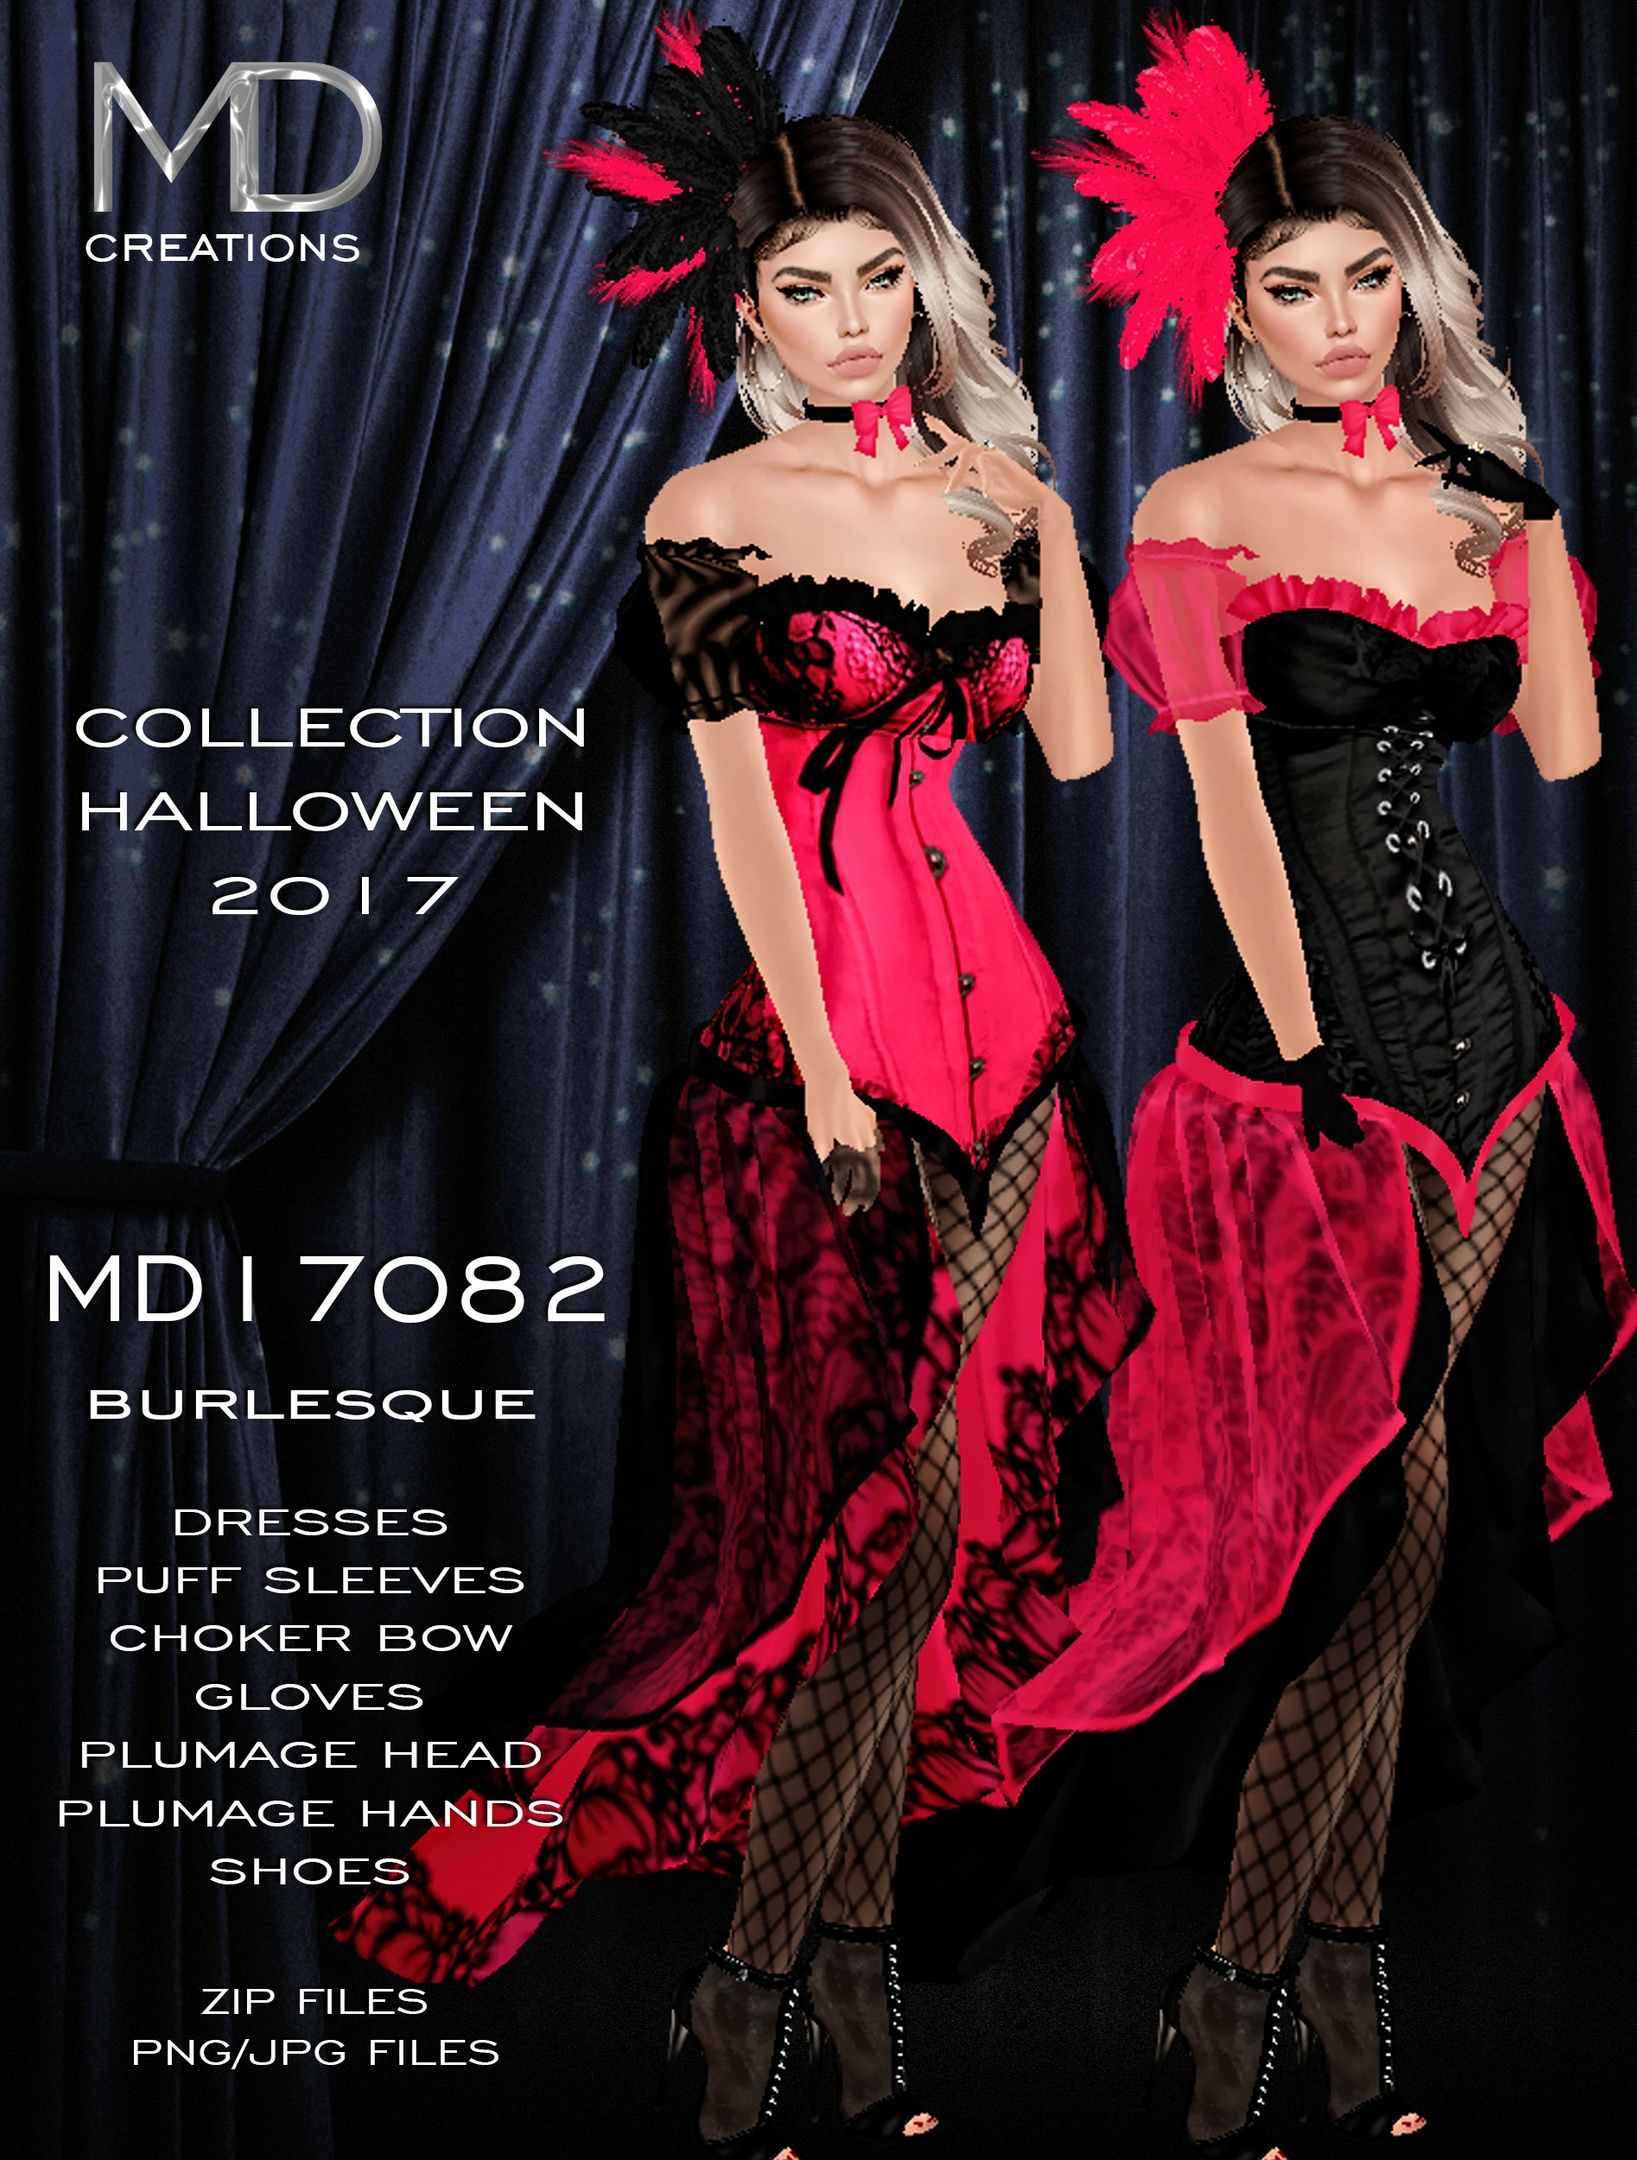 MD17082 - Collection Halloween